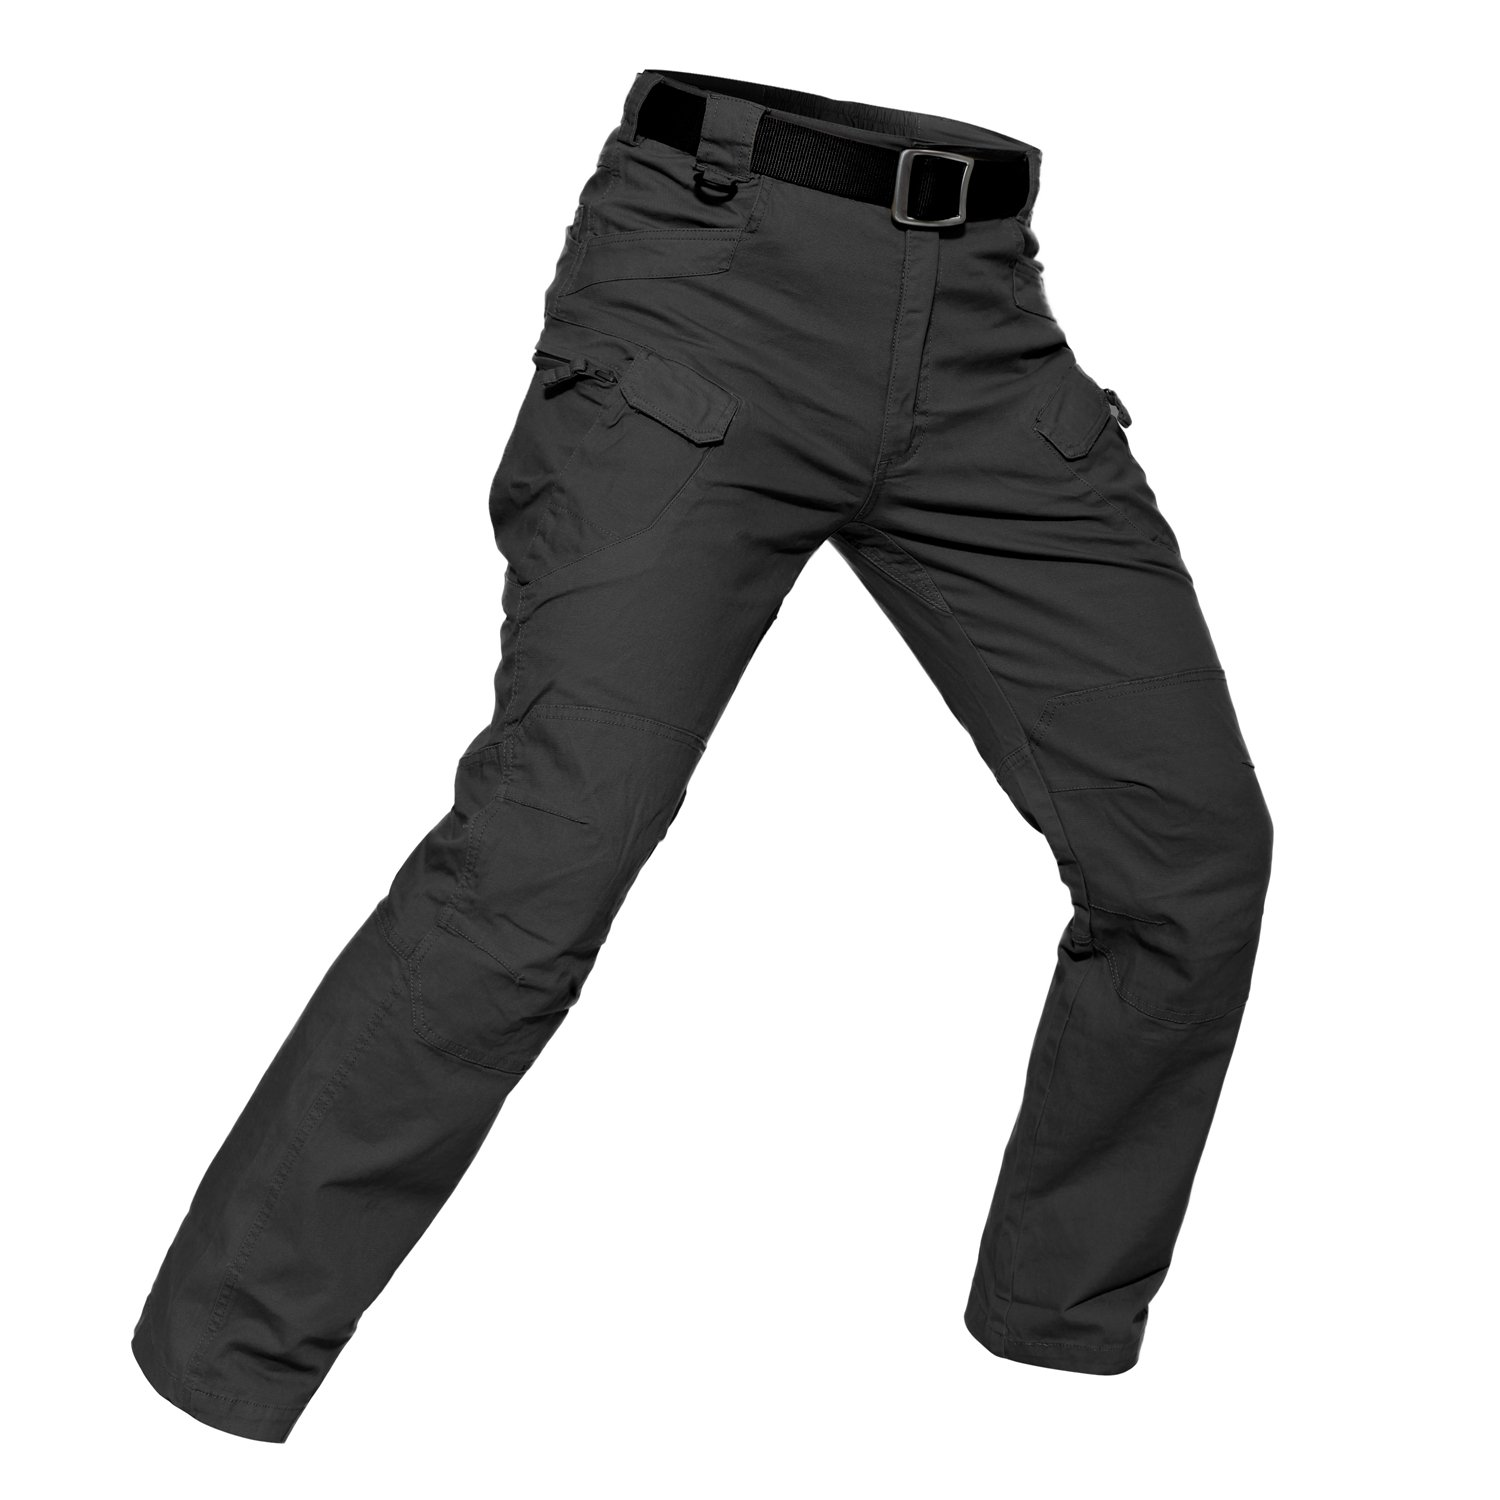 Amy-Club Tactical Pants Men Clothing Military Trousers Cargo Pants Combat Casual Army Lightweight (XXL, Black)